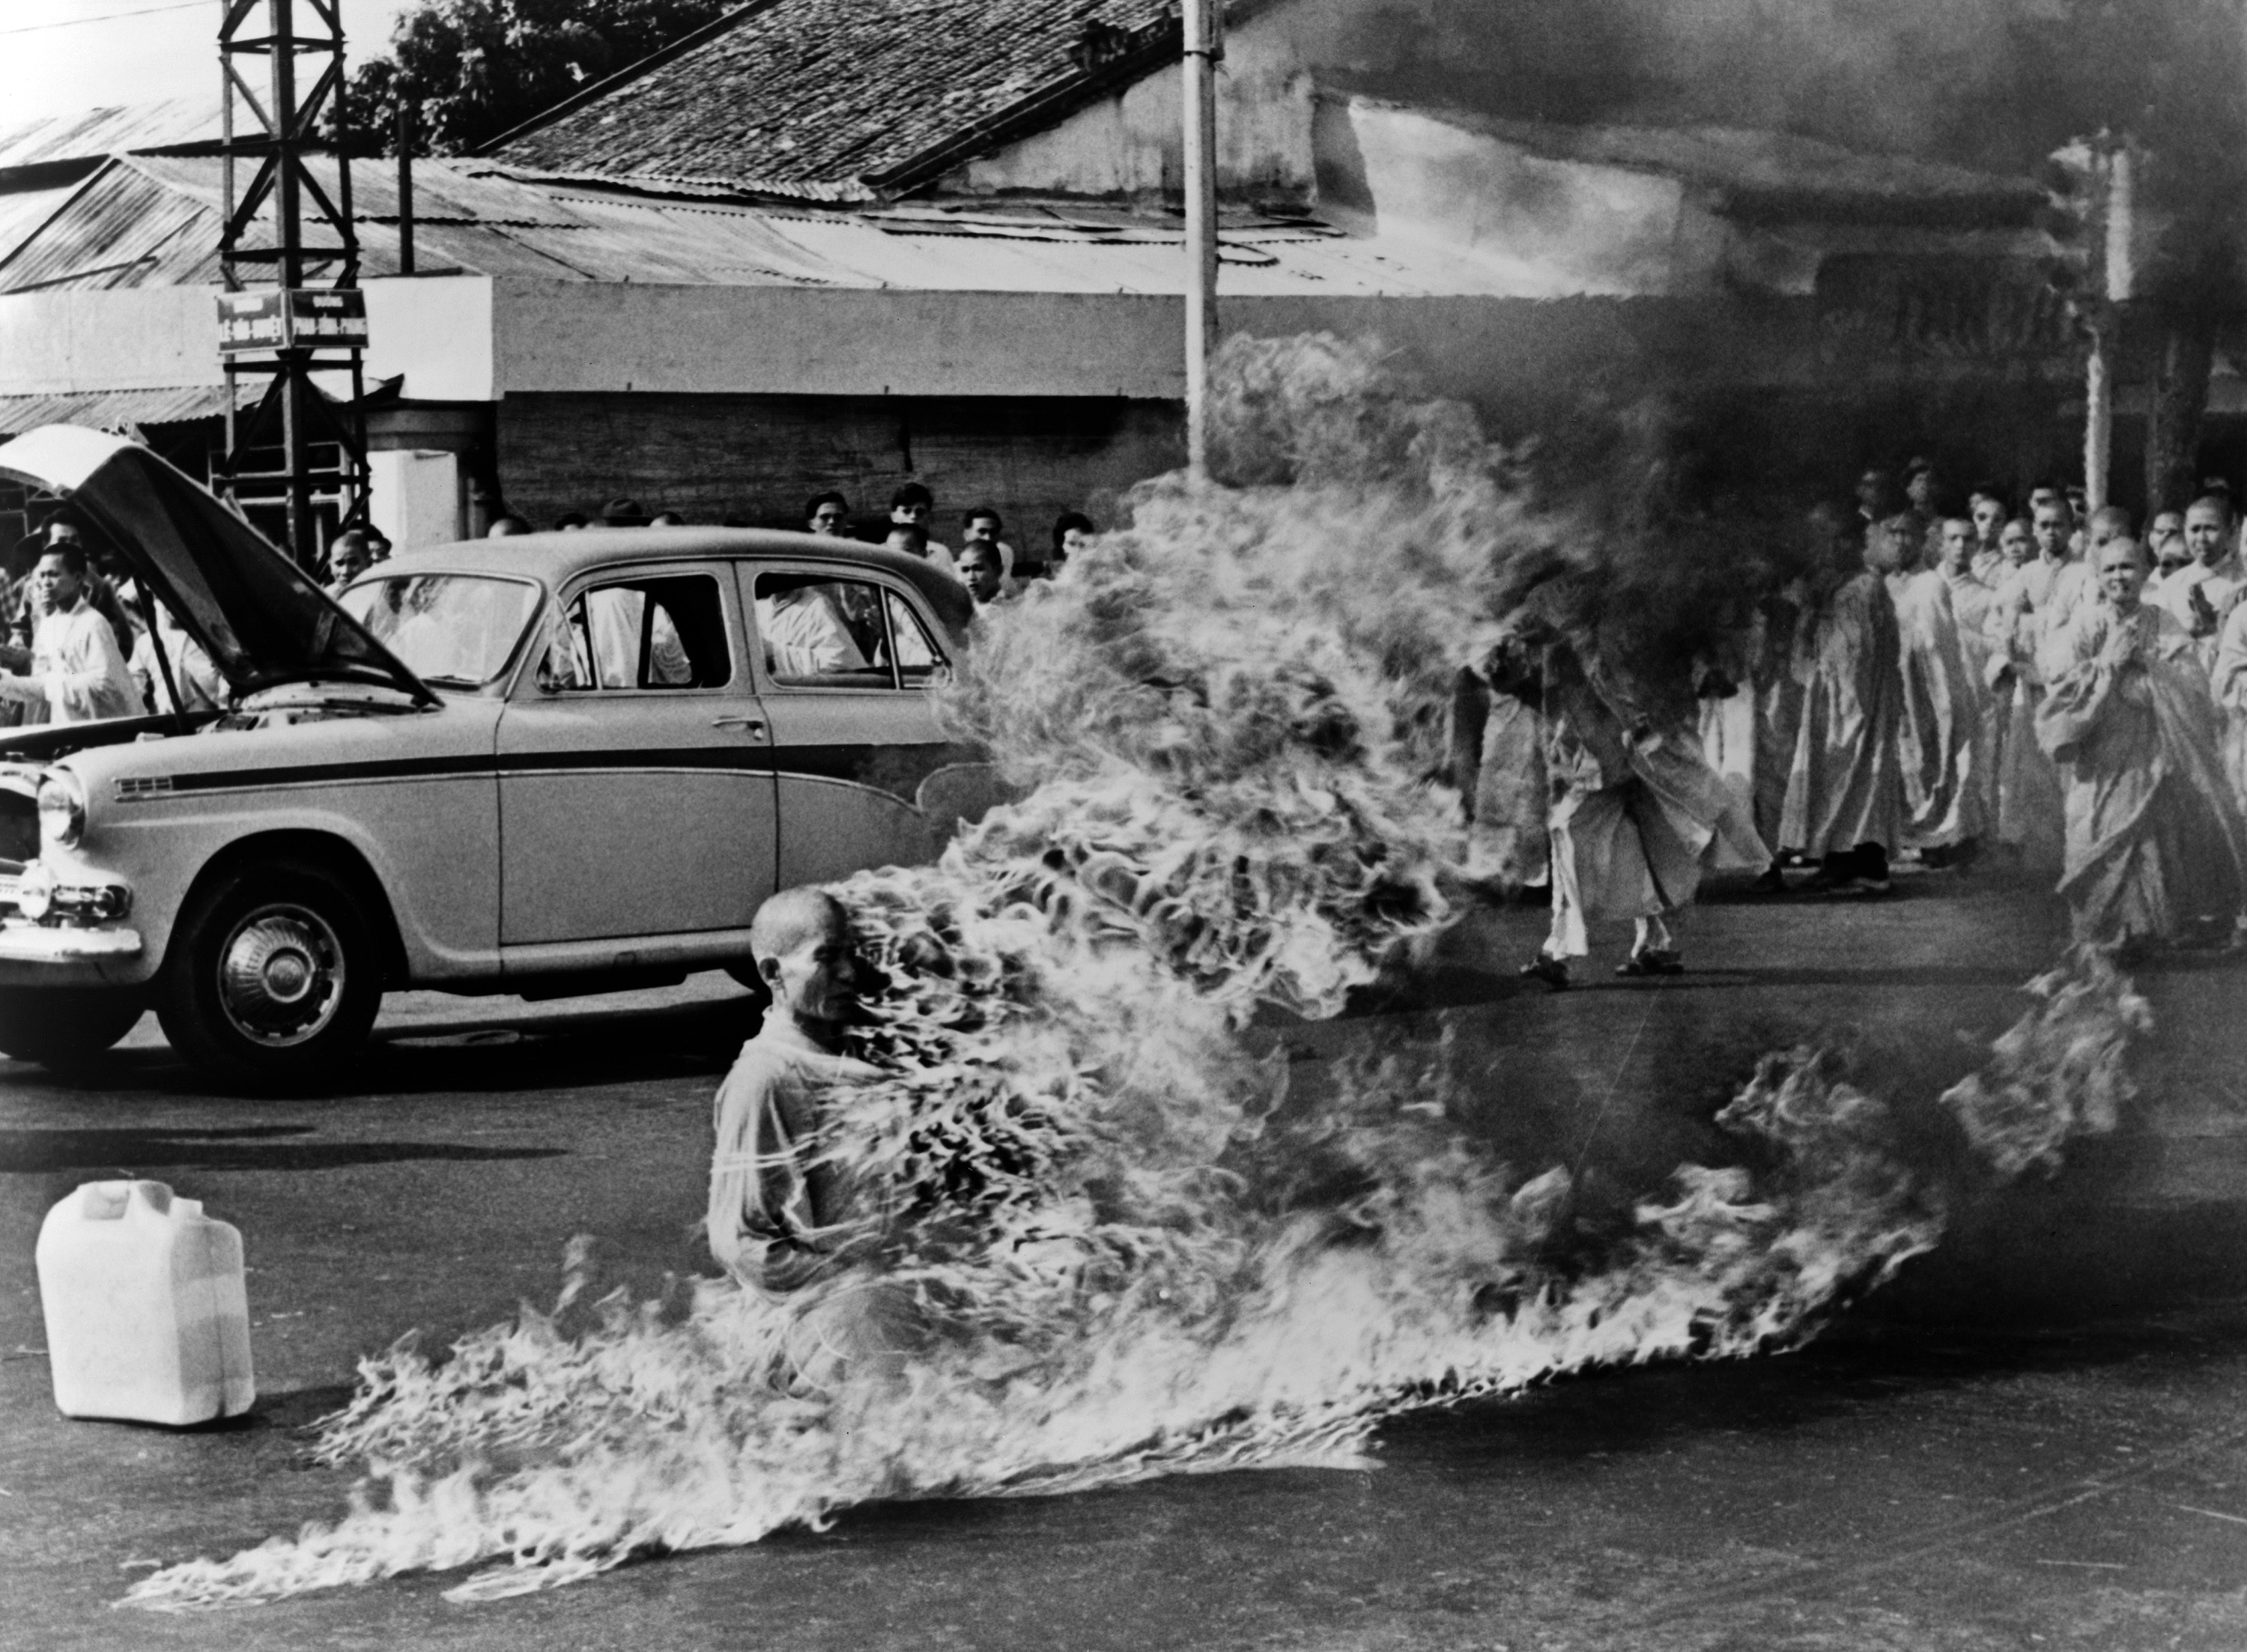 The act of self-immolation by a Buddhist monk Thich Quang Duc